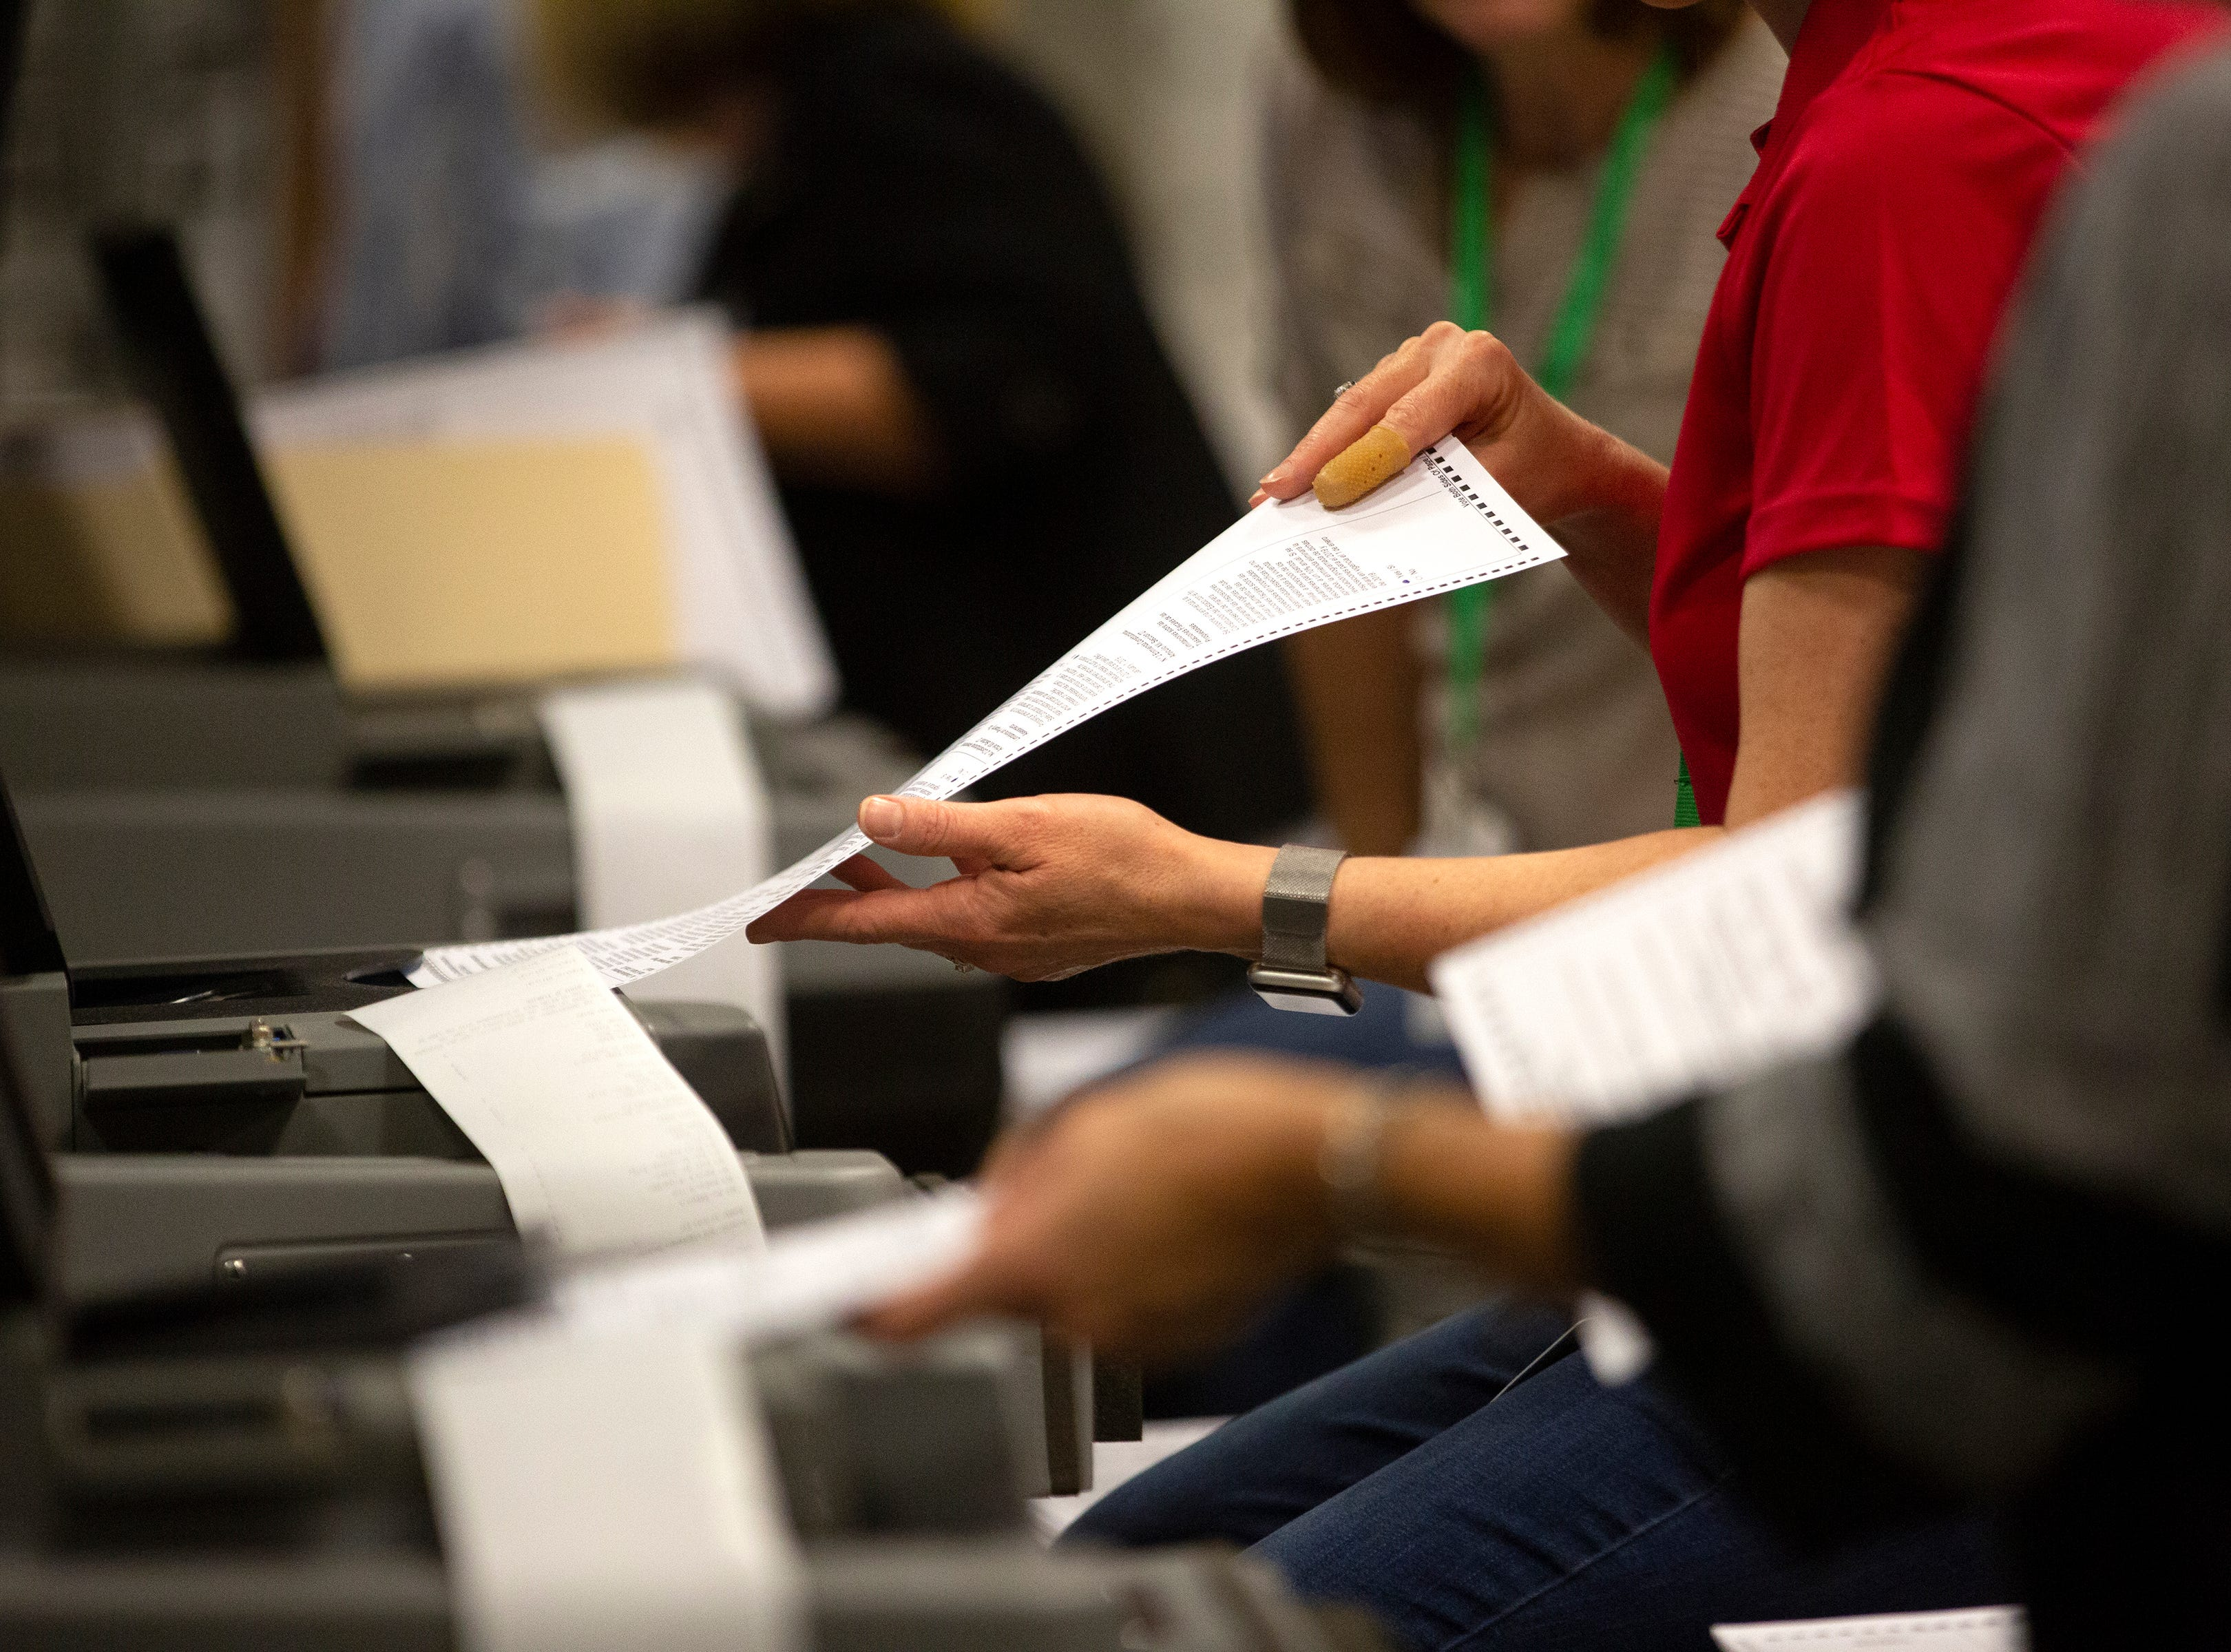 Florida election recounts bring out 'darker angels' as partisans sling unfounded claims